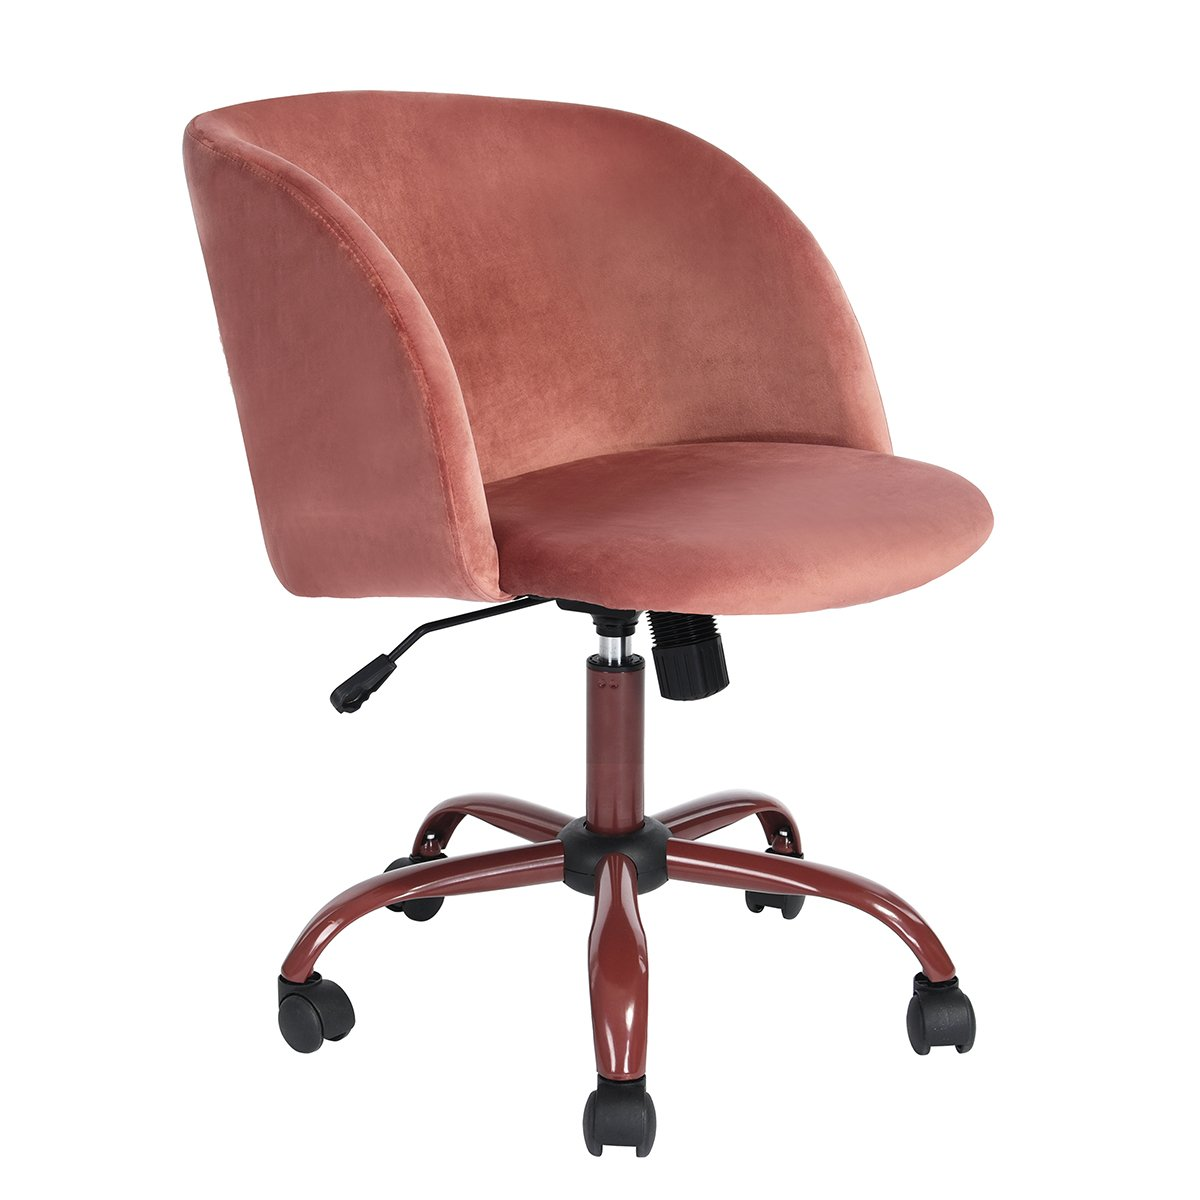 EGGREE Mid Back Swivel Computer Desk Chair Ergonomic Home Office Task Chair Executive Chairs with Velvet